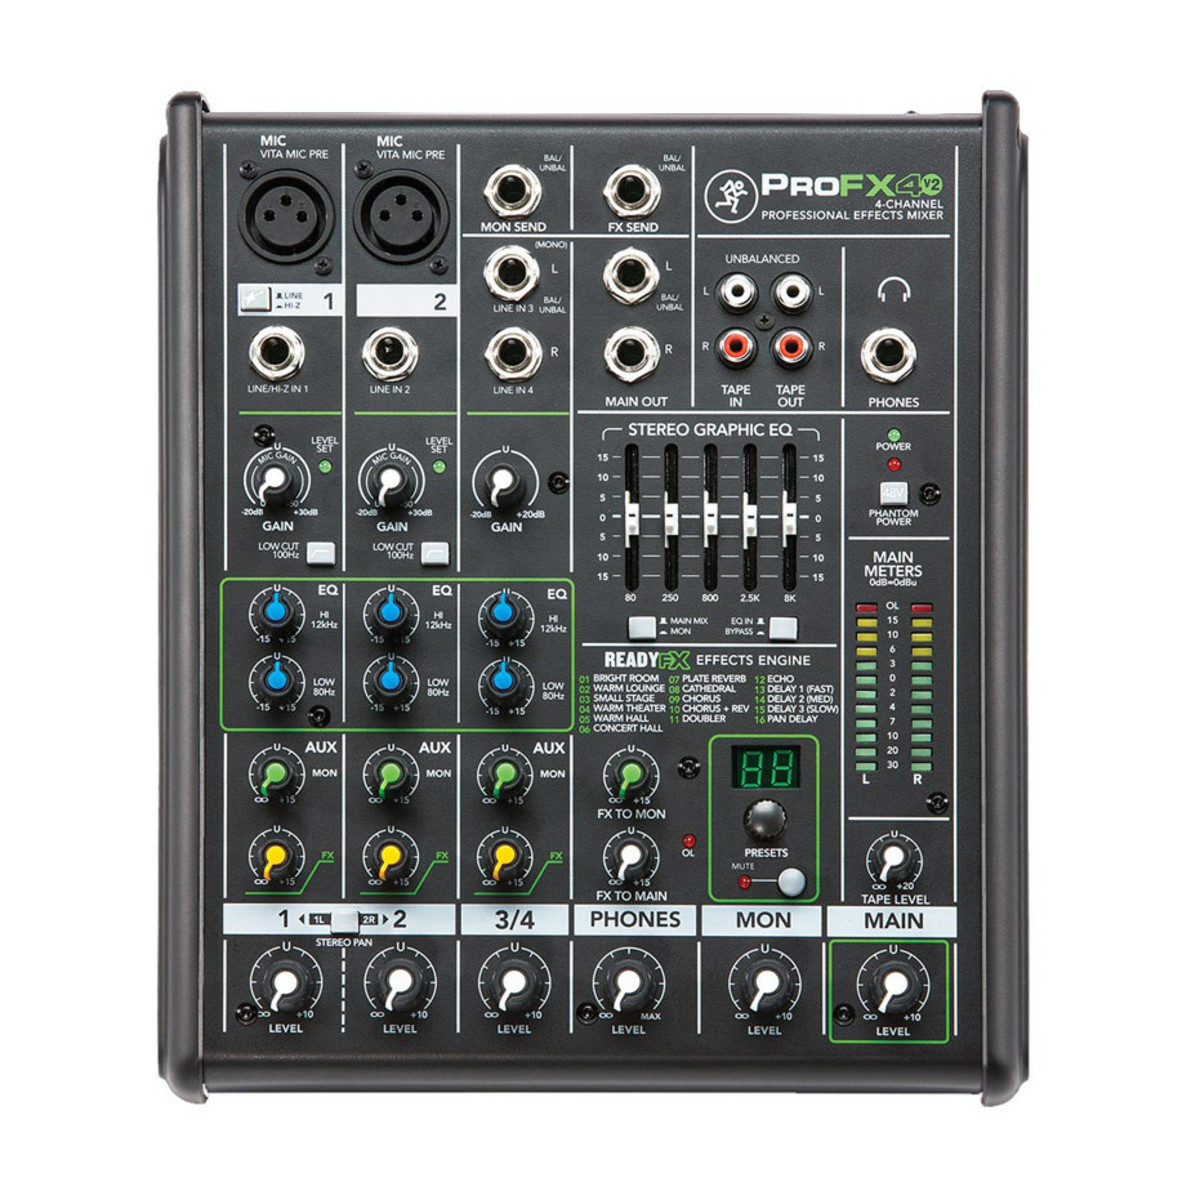 Mackie profx4v2 4 channel professional effects mixer at for Mesa mezclas barata